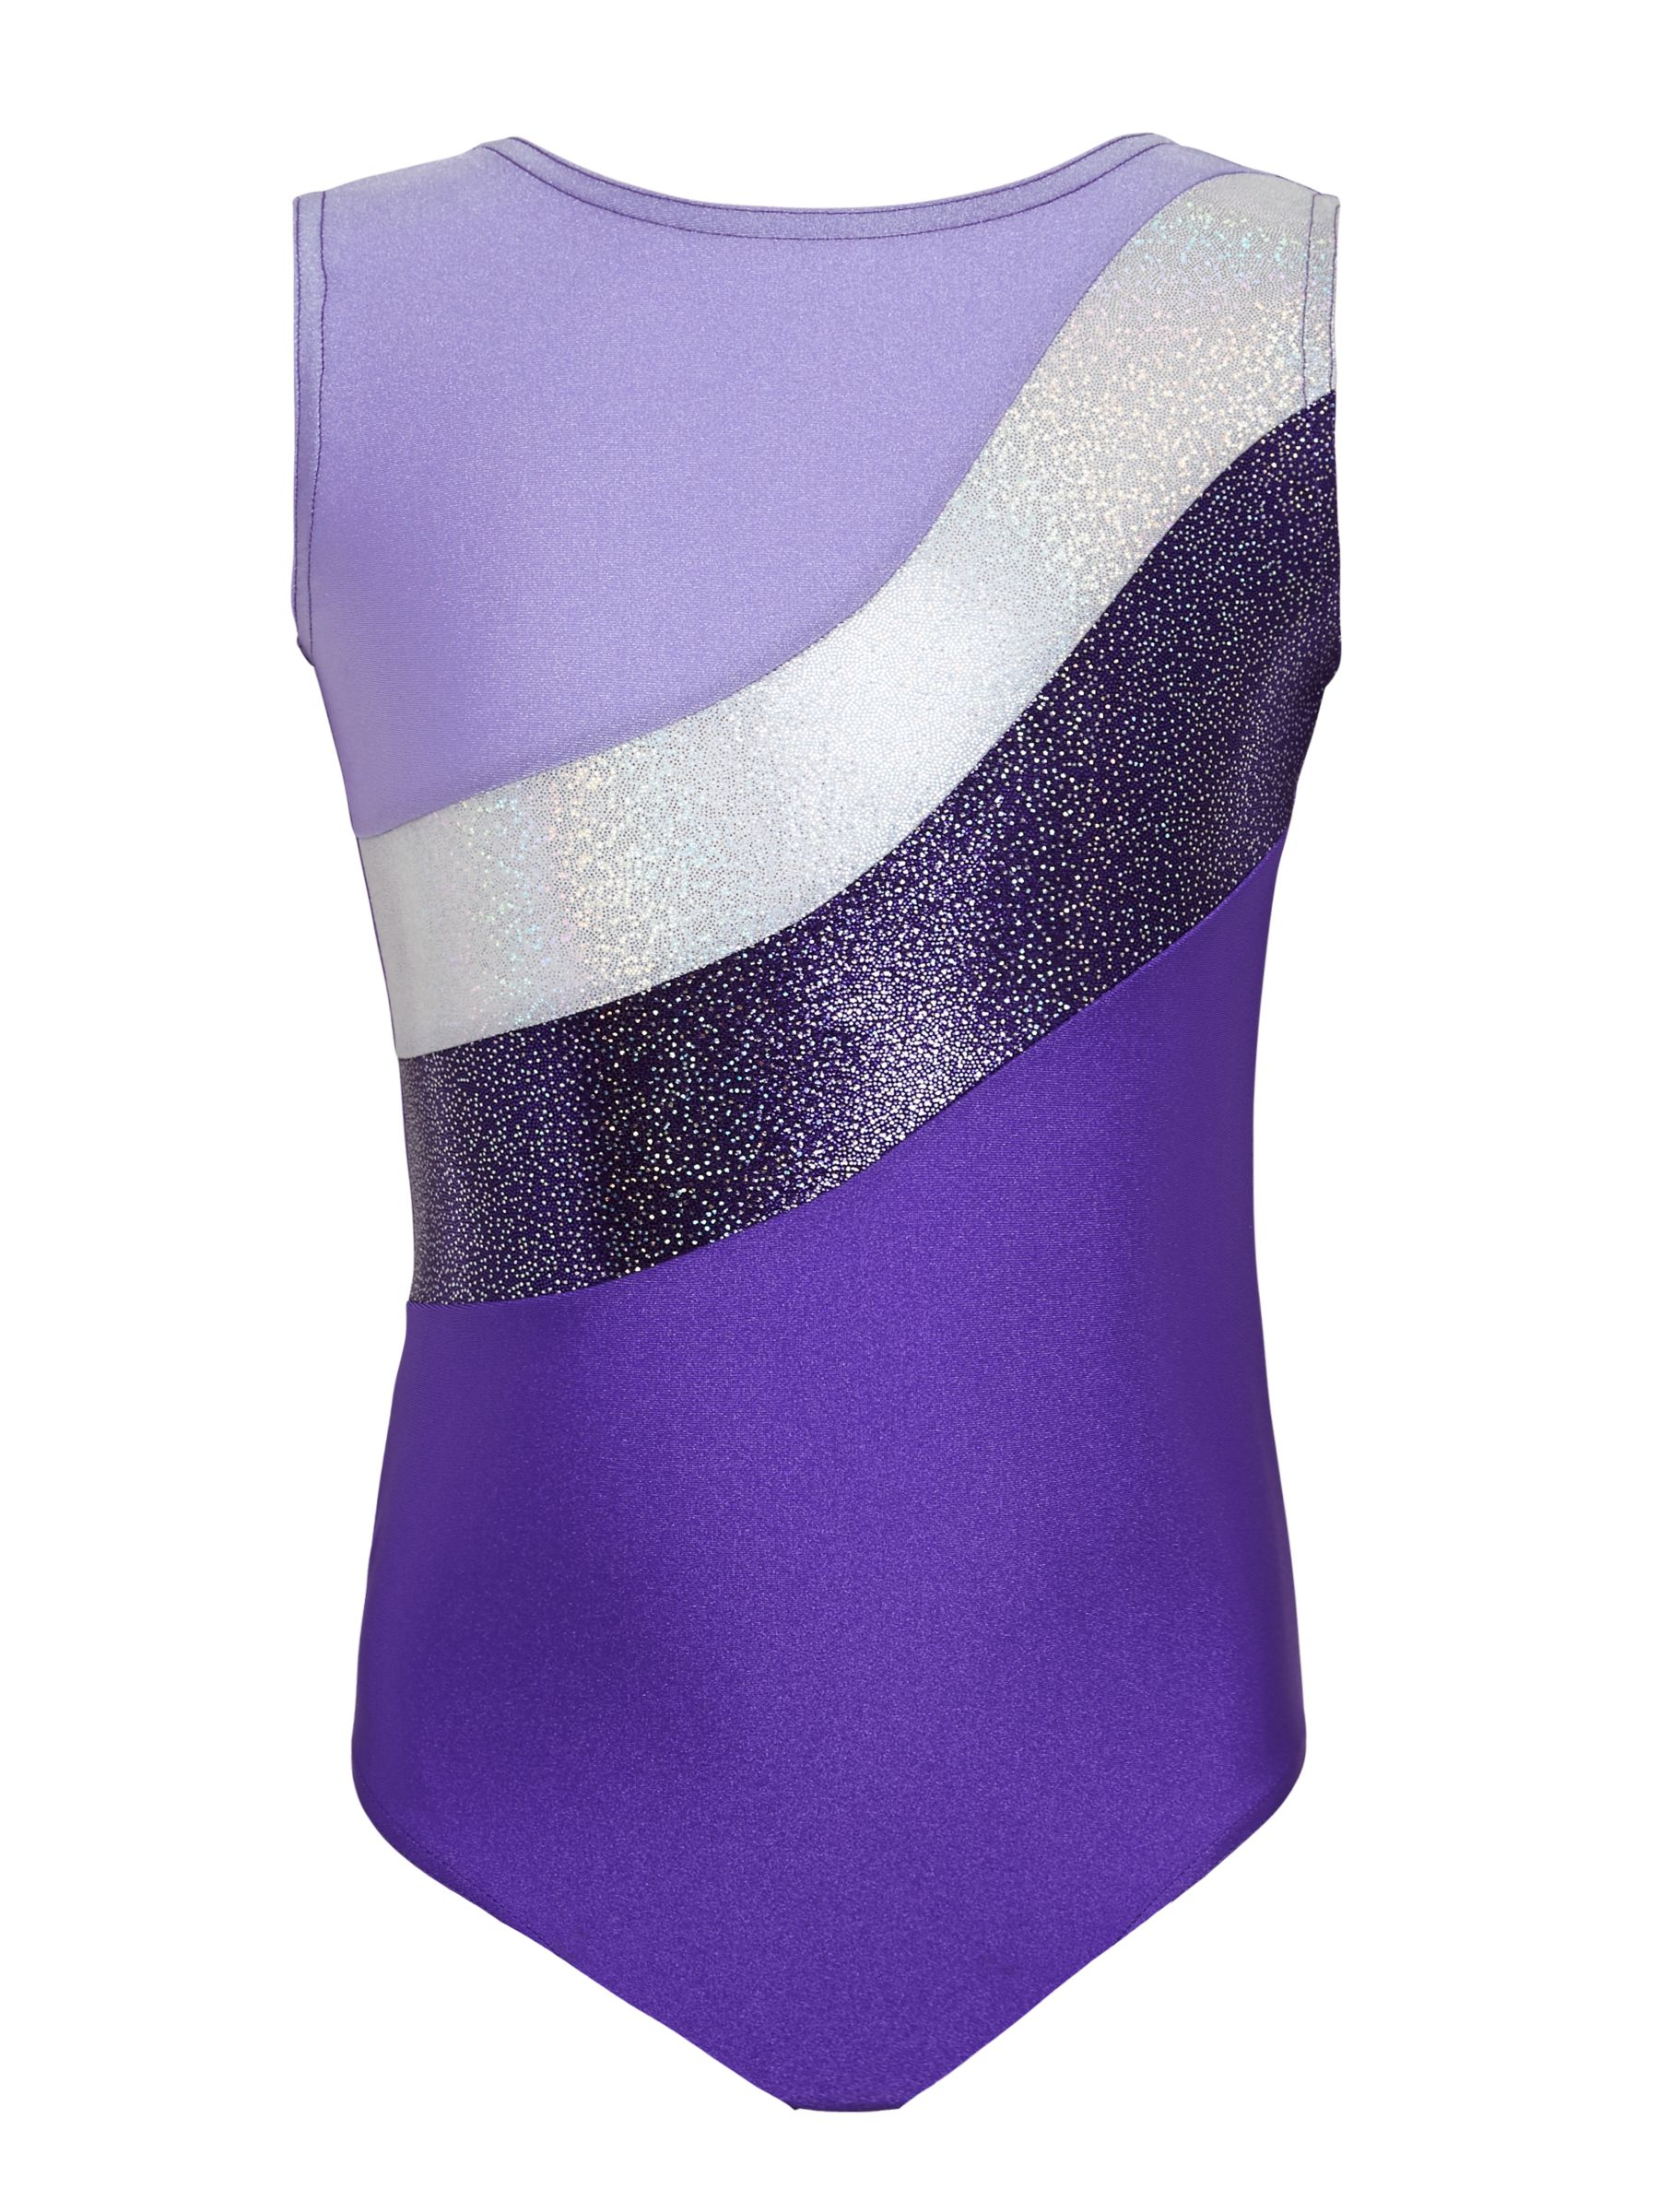 Tappers and Pointers Tappers and Pointers Sparkling Stripes Sleeveless Gymnastics Leotard, Purple